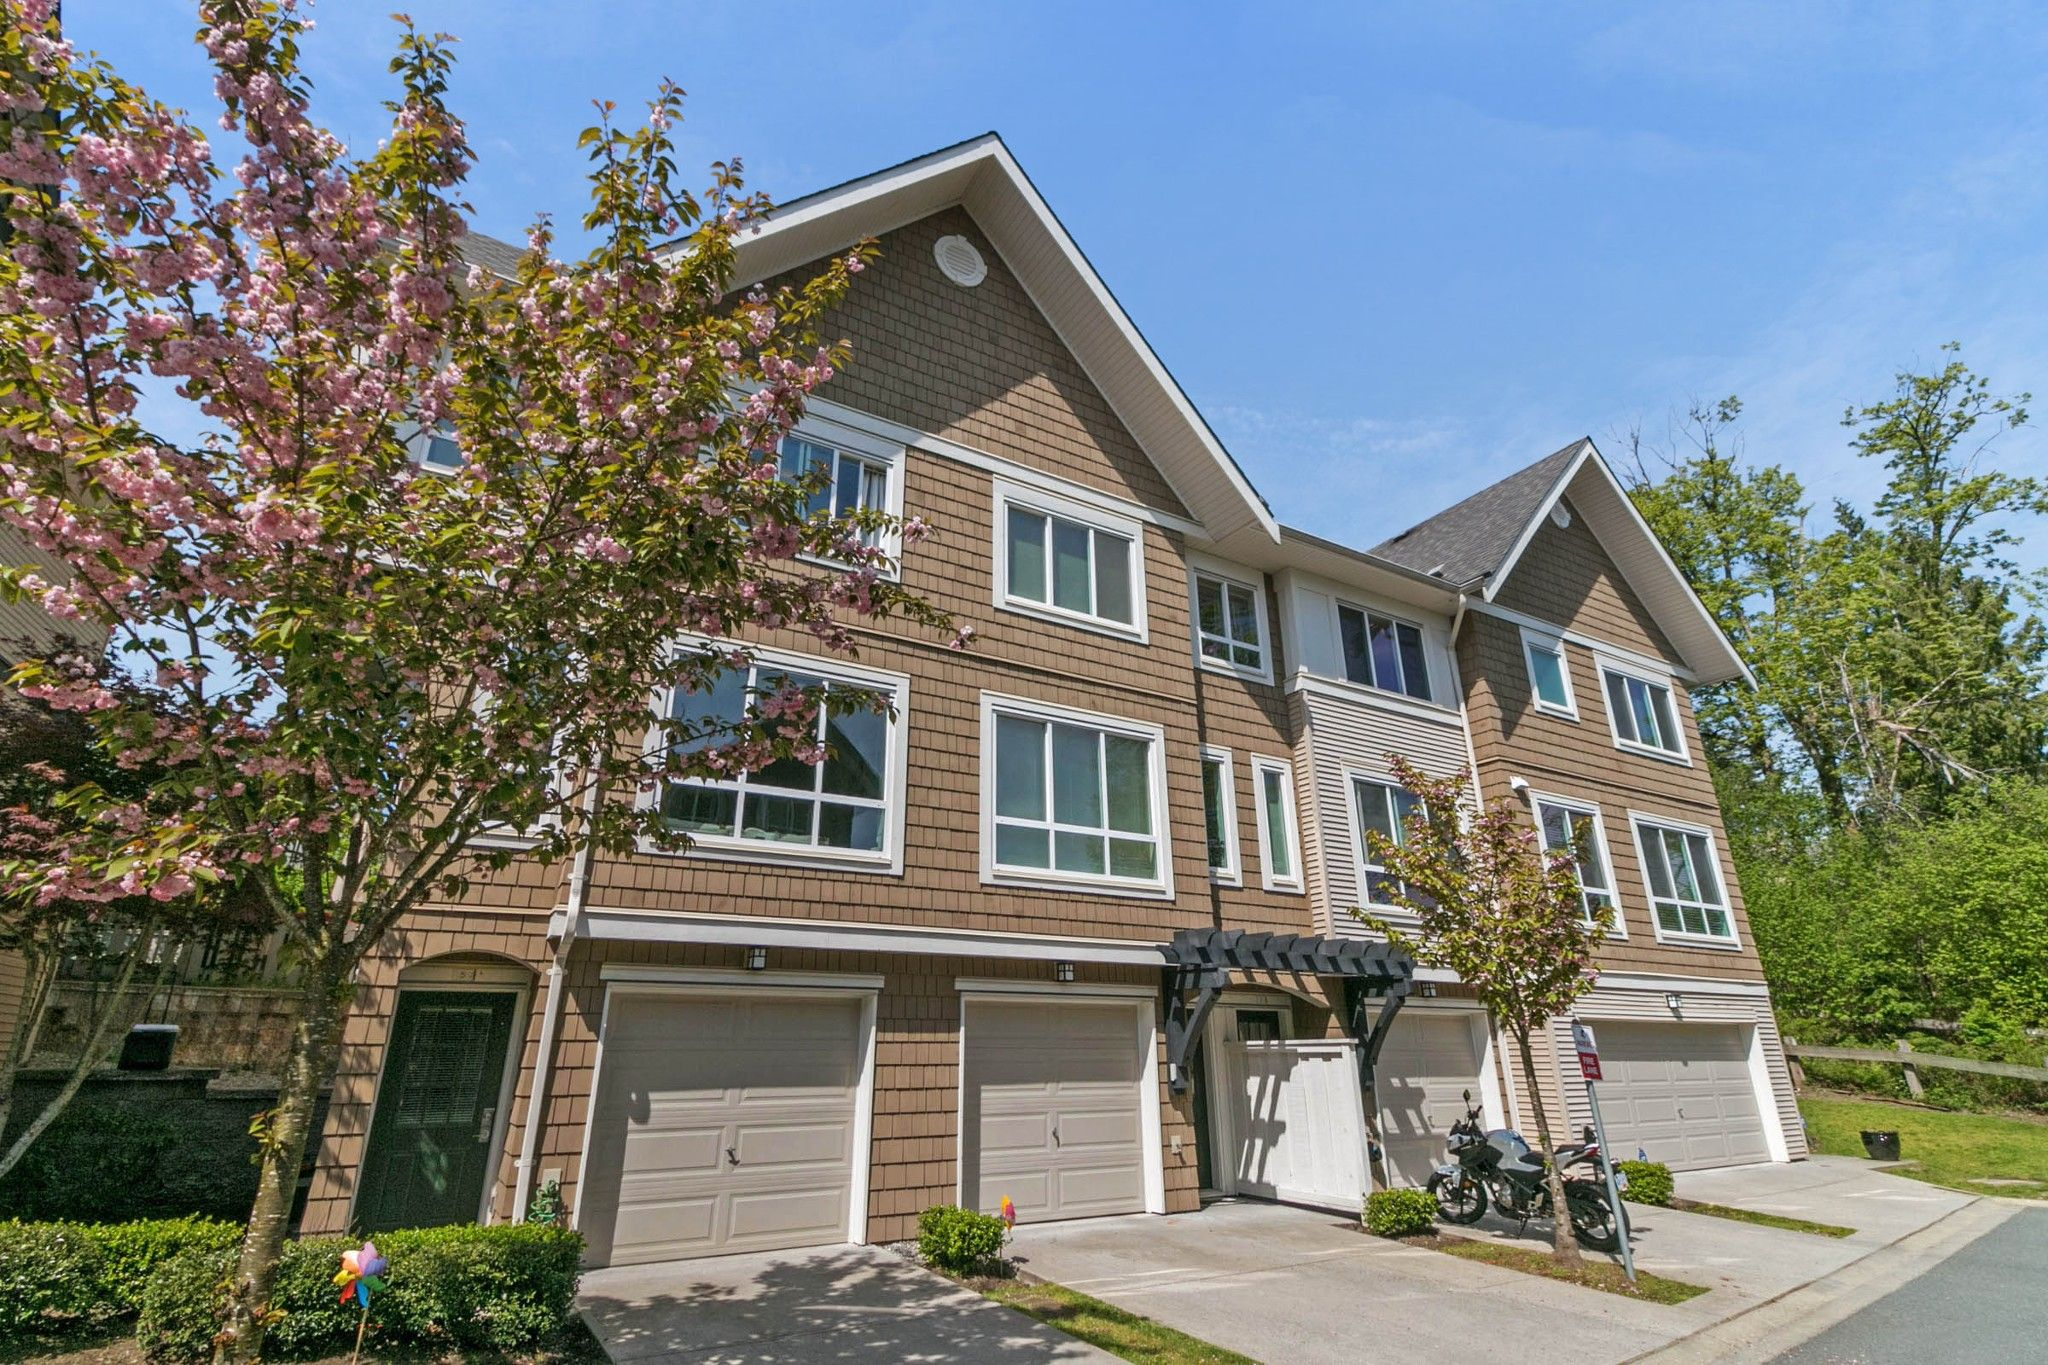 """Main Photo: 5 1295 SOBALL Street in Coquitlam: Burke Mountain Townhouse for sale in """"TYNERIDGE SOUTH"""" : MLS®# R2265403"""